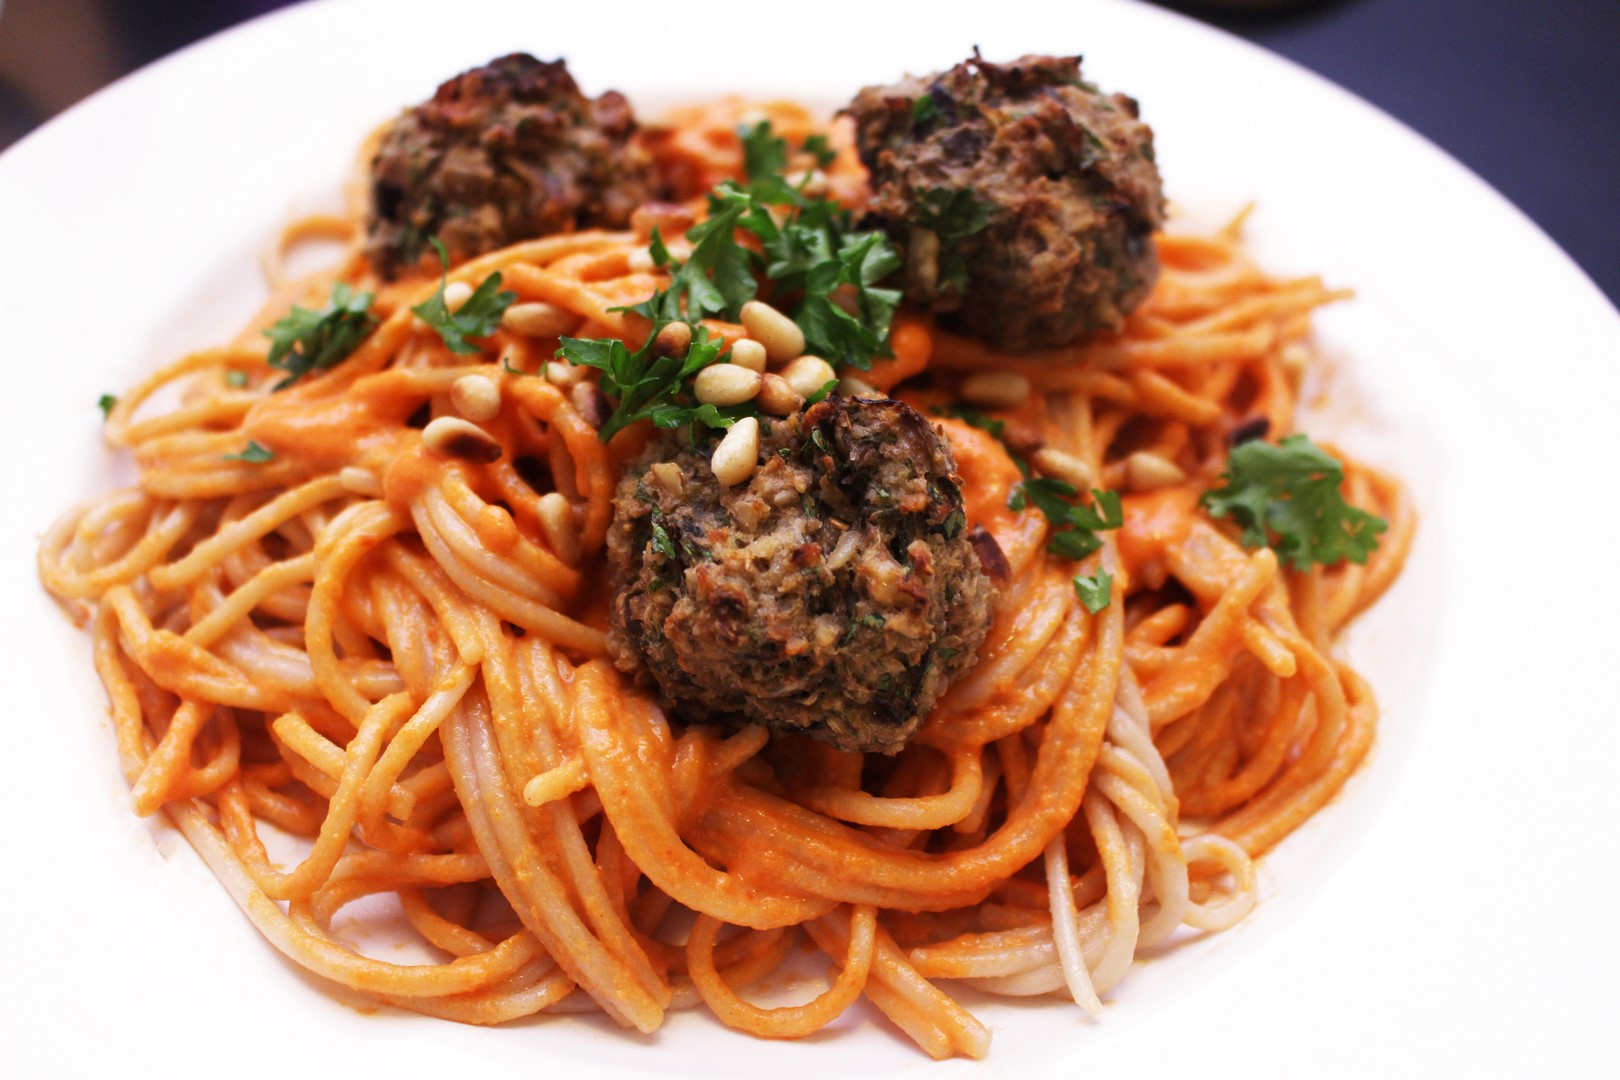 Eggplant Meatballs with Roasted Red Pepper Tahini Pasta (Vegan, Gluten Free, Oil Free)